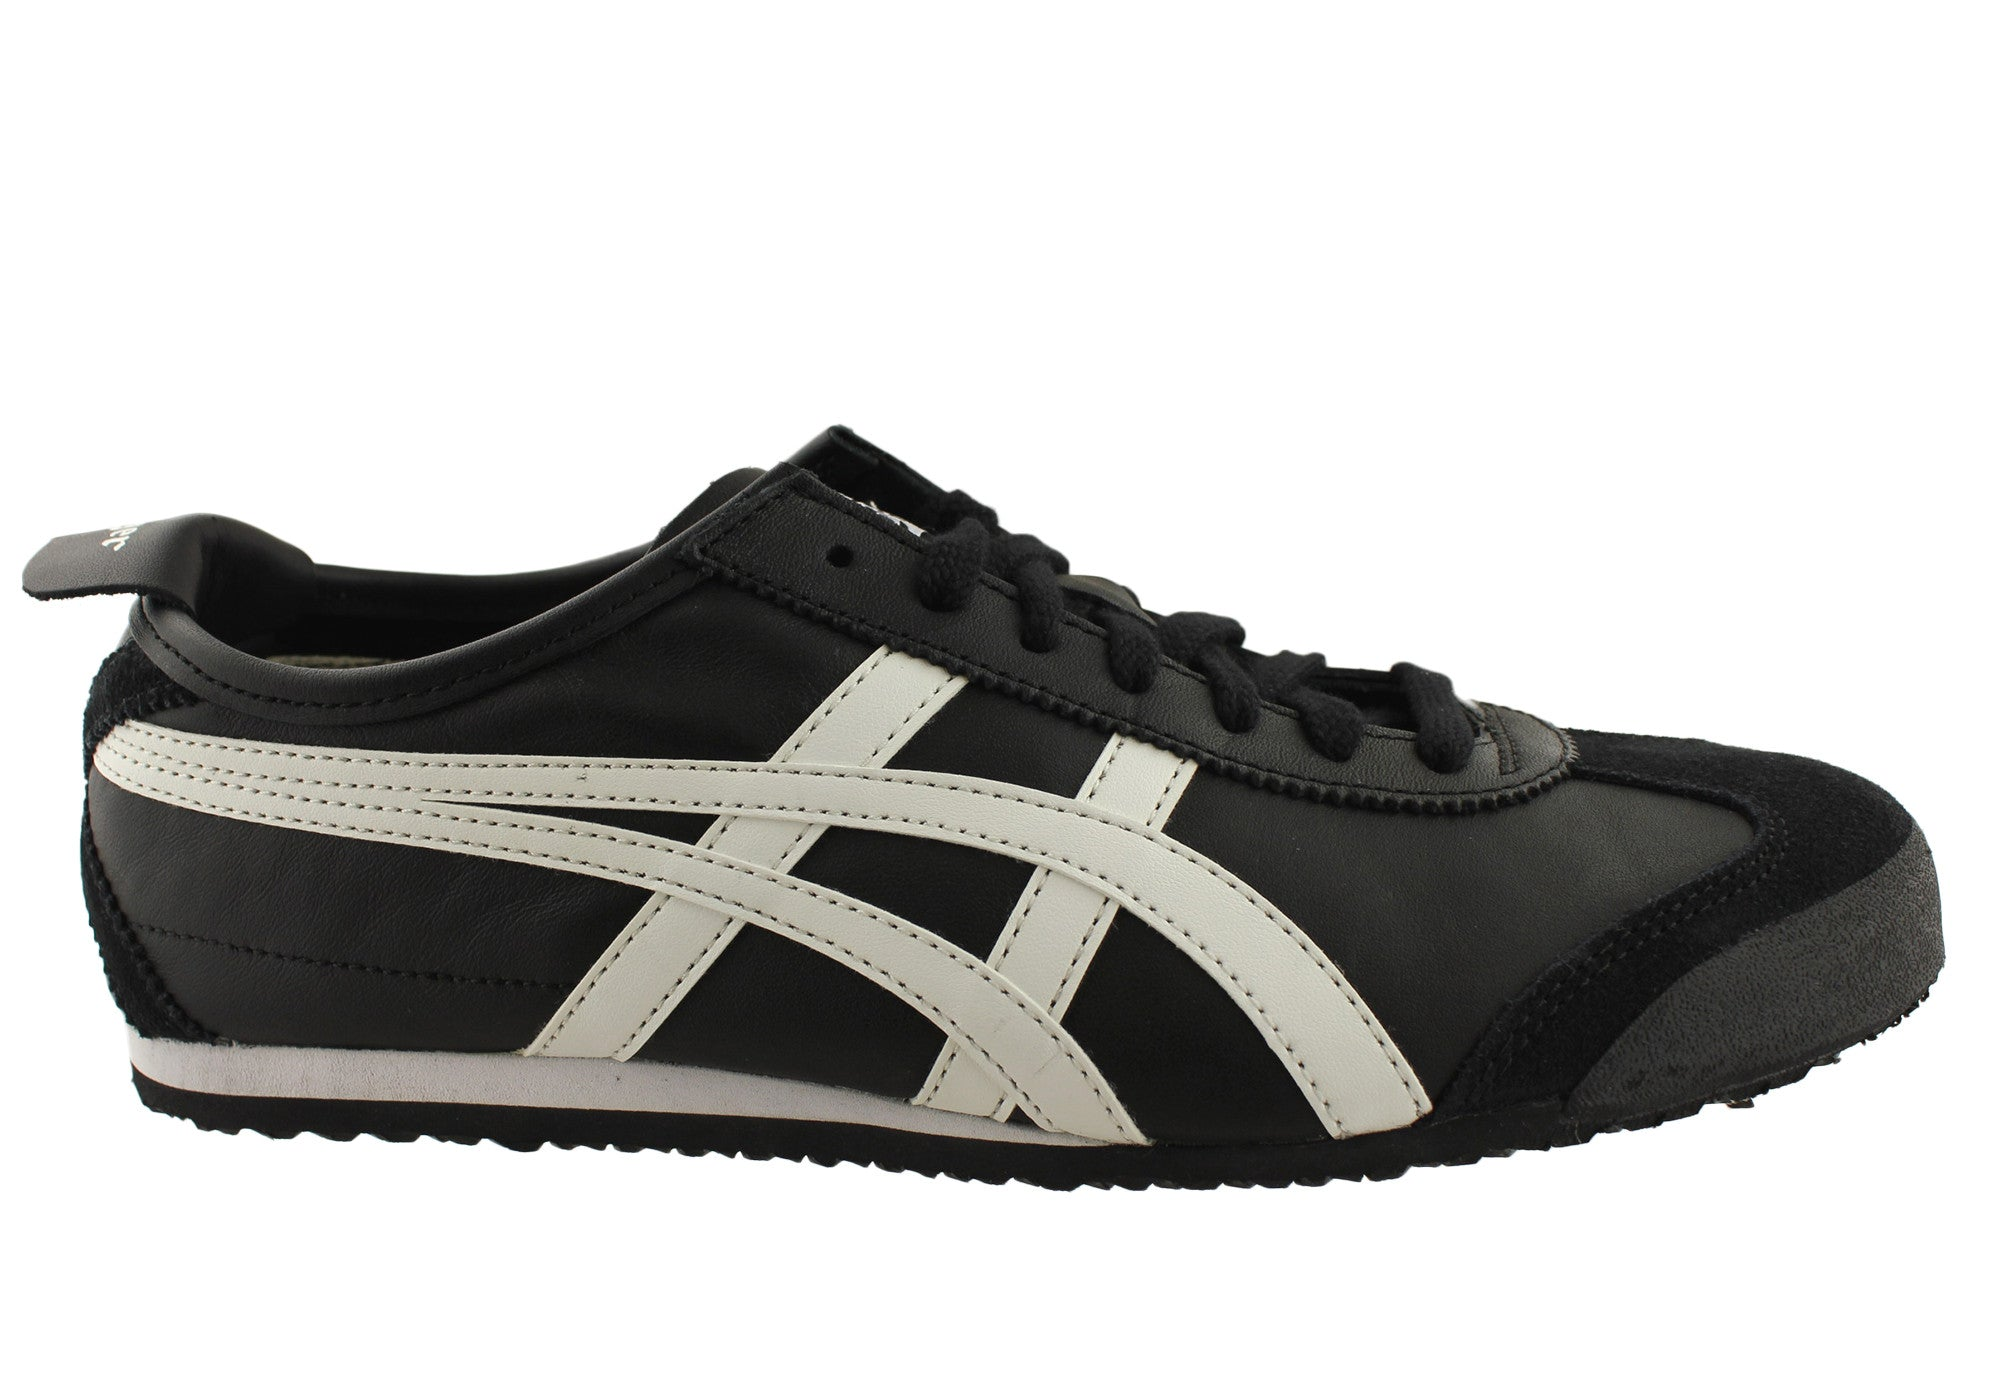 3e979ecc3145 Home Asics Onitsuka Tiger Mexico 66 Mens Leather Lace Up Casual Shoes.  Beige Navy · Vintage Blue · Black White ...